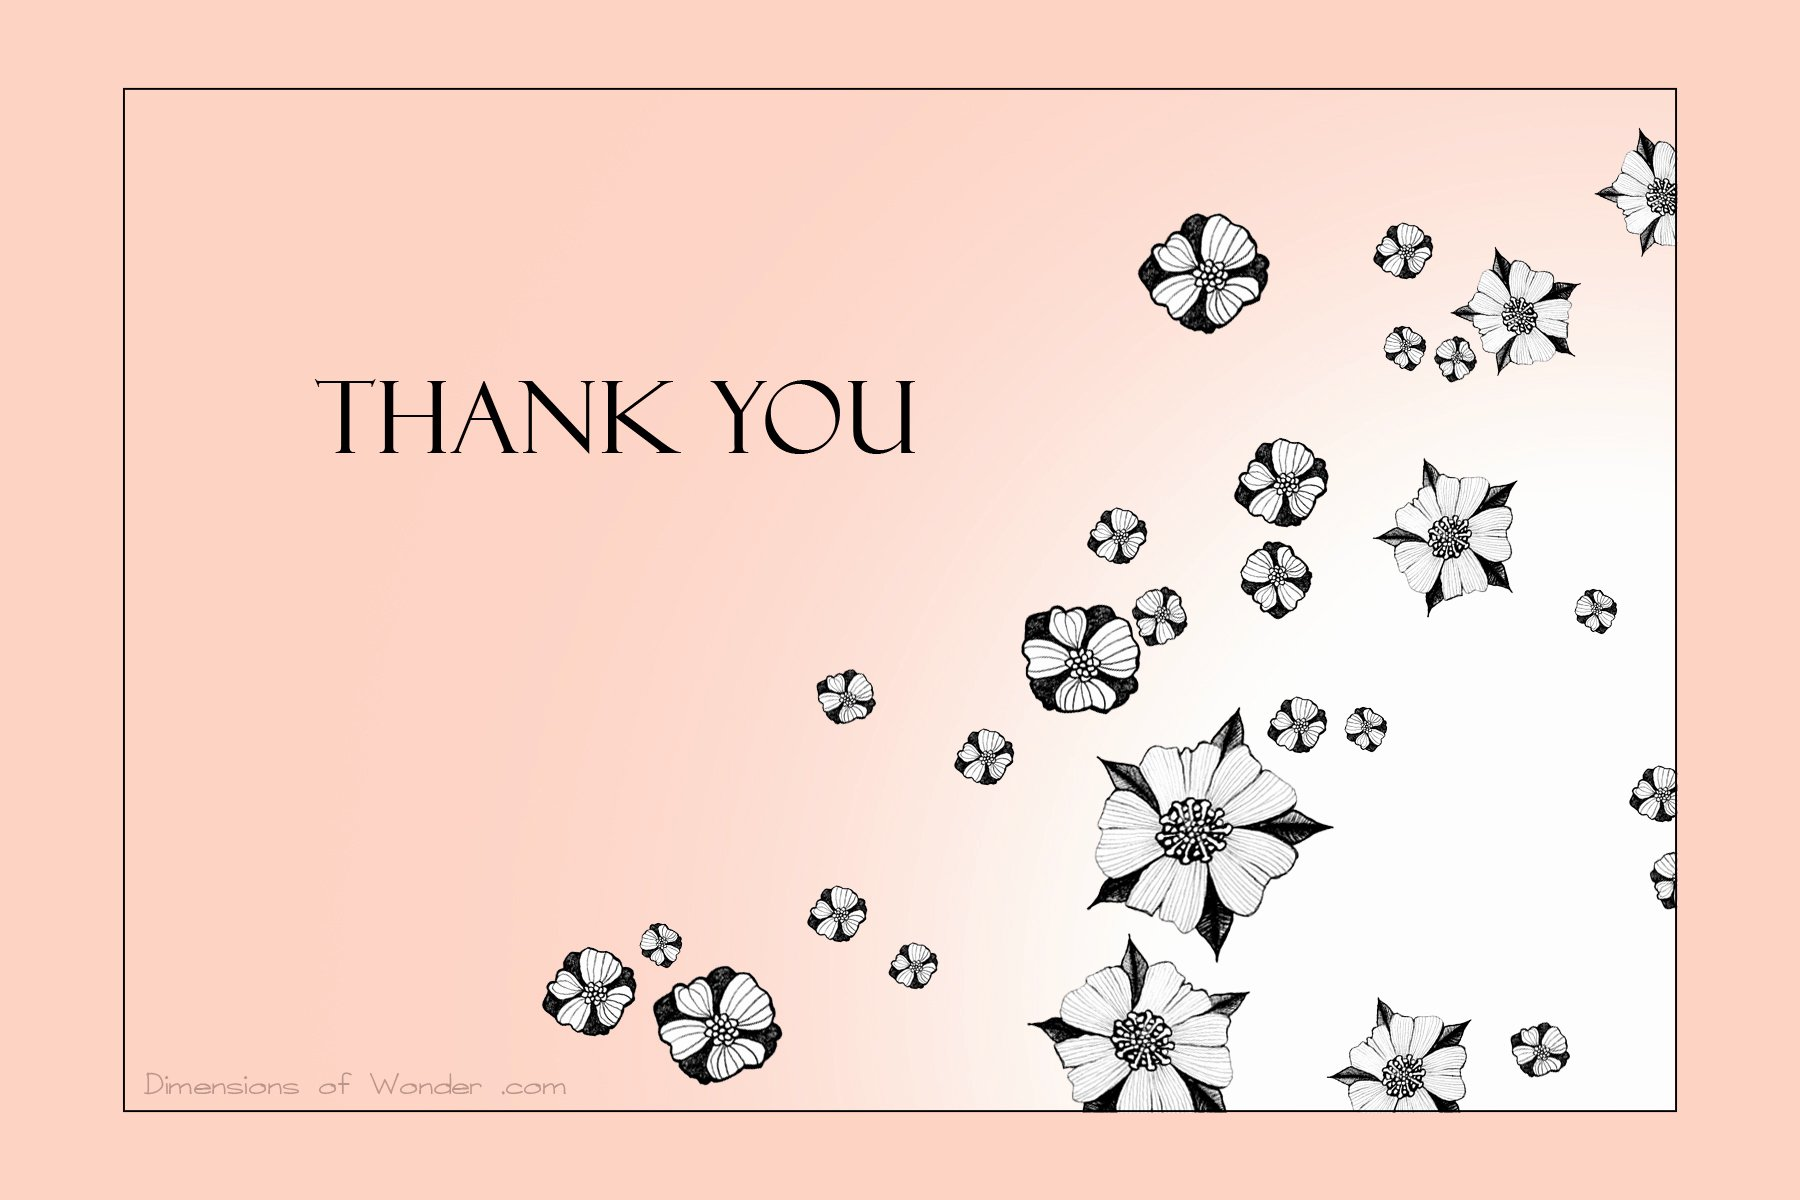 Thank You Card Template Word Elegant Thank You Card Template for Word Portablegasgrillweber